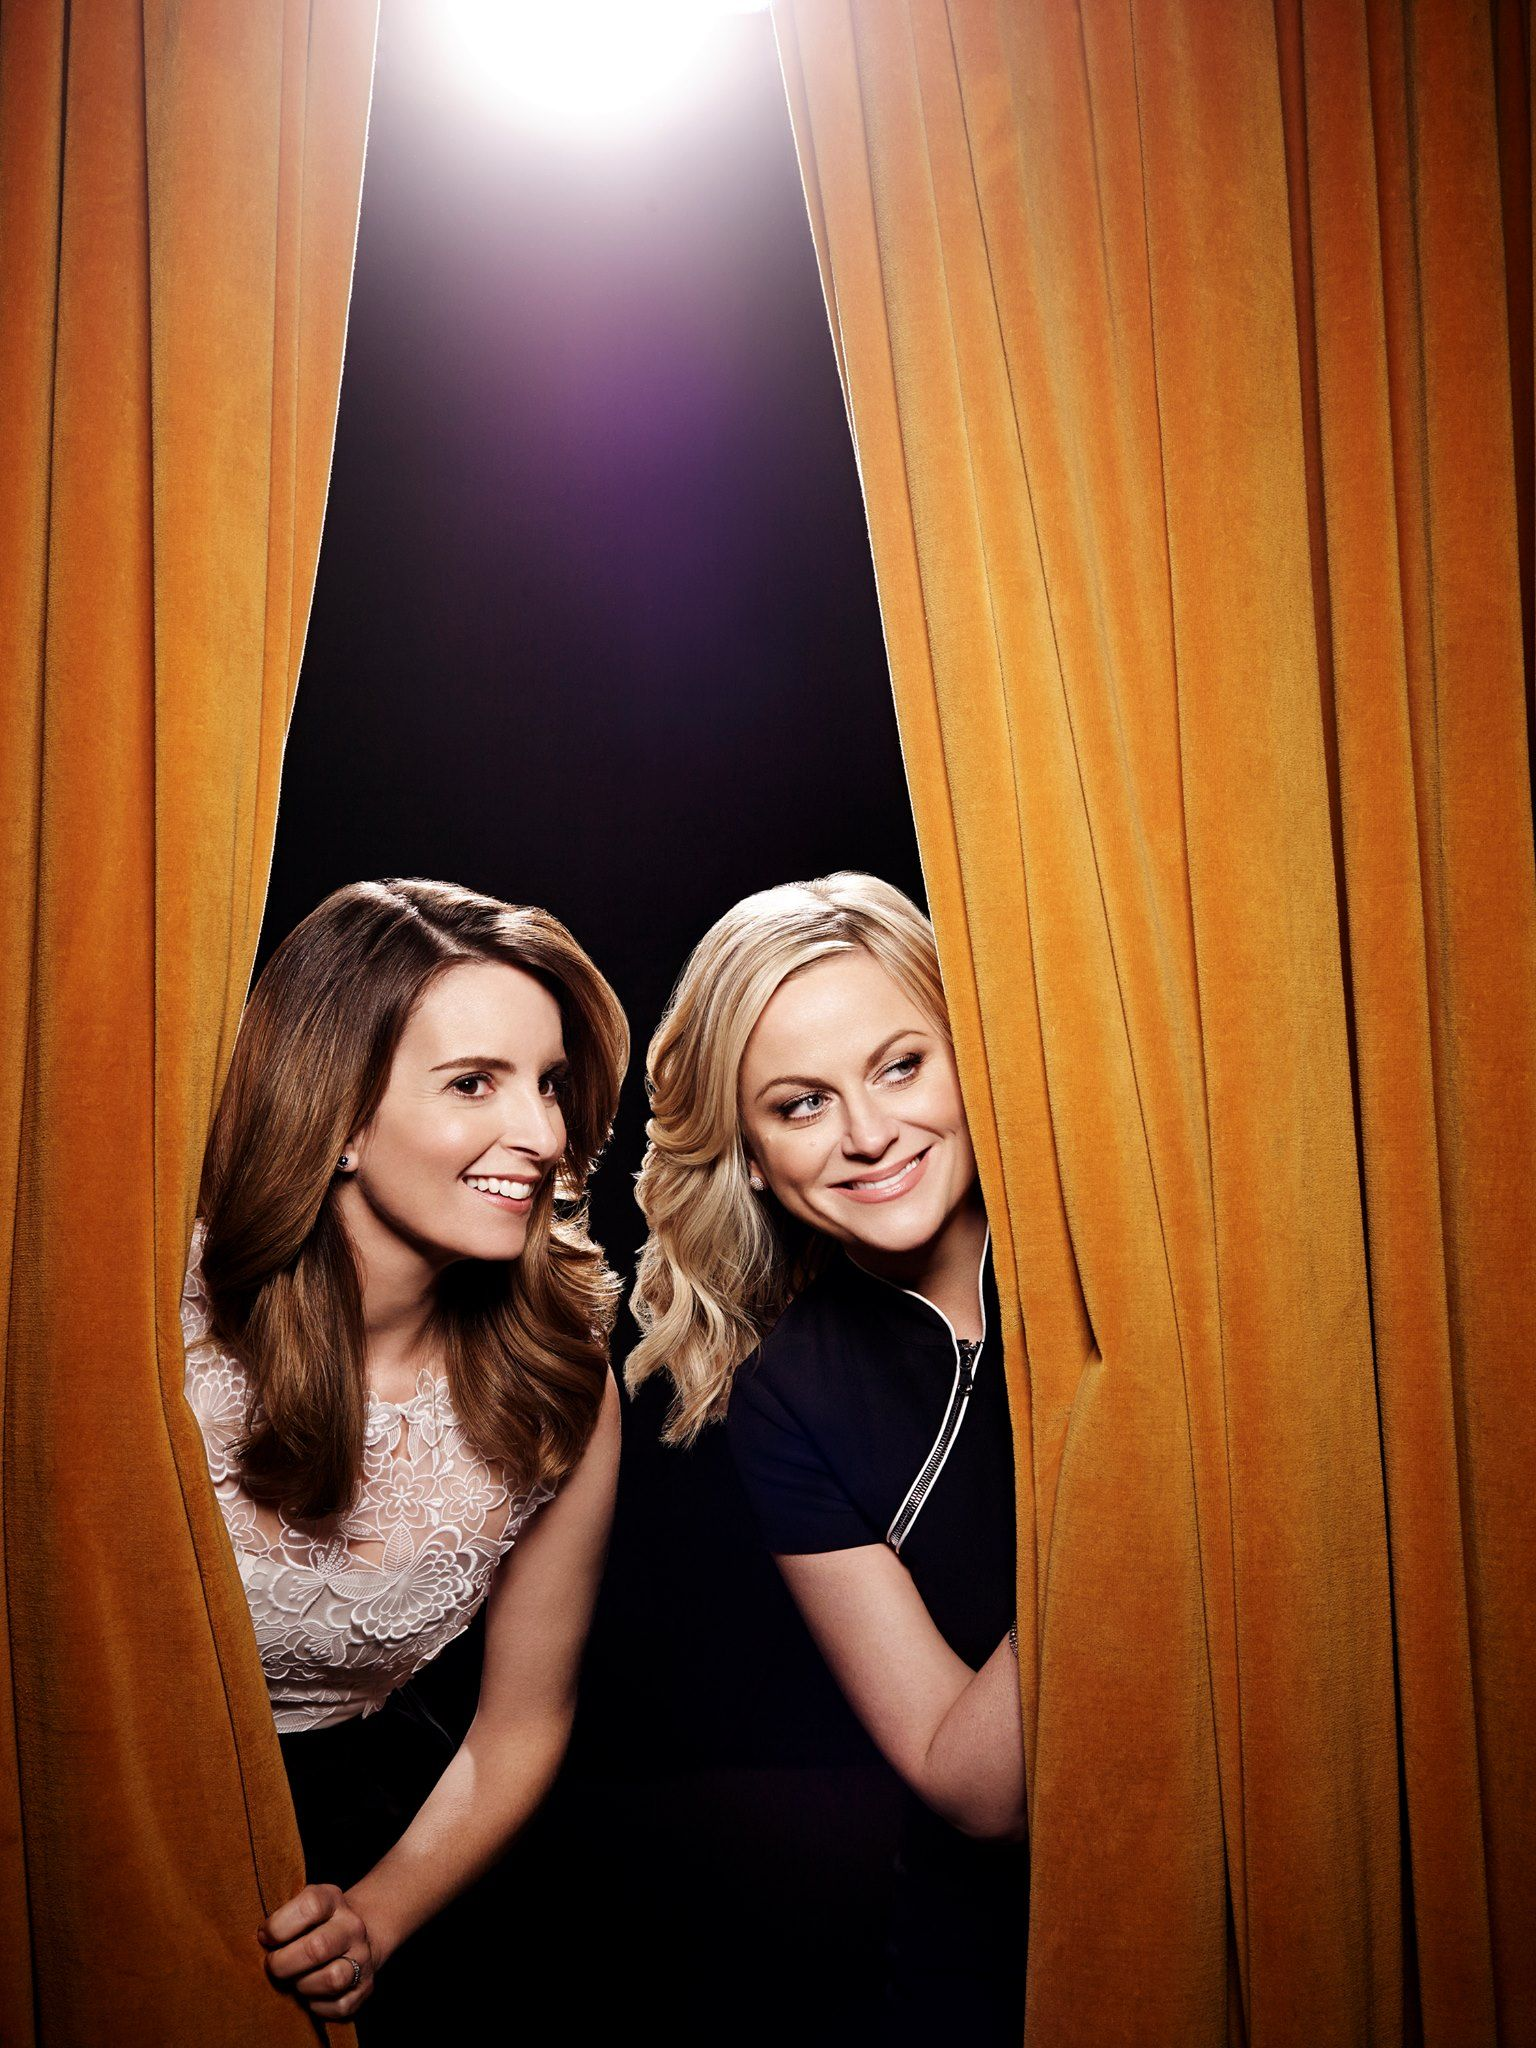 tina fey and amy poehler funny as it gets they rocked